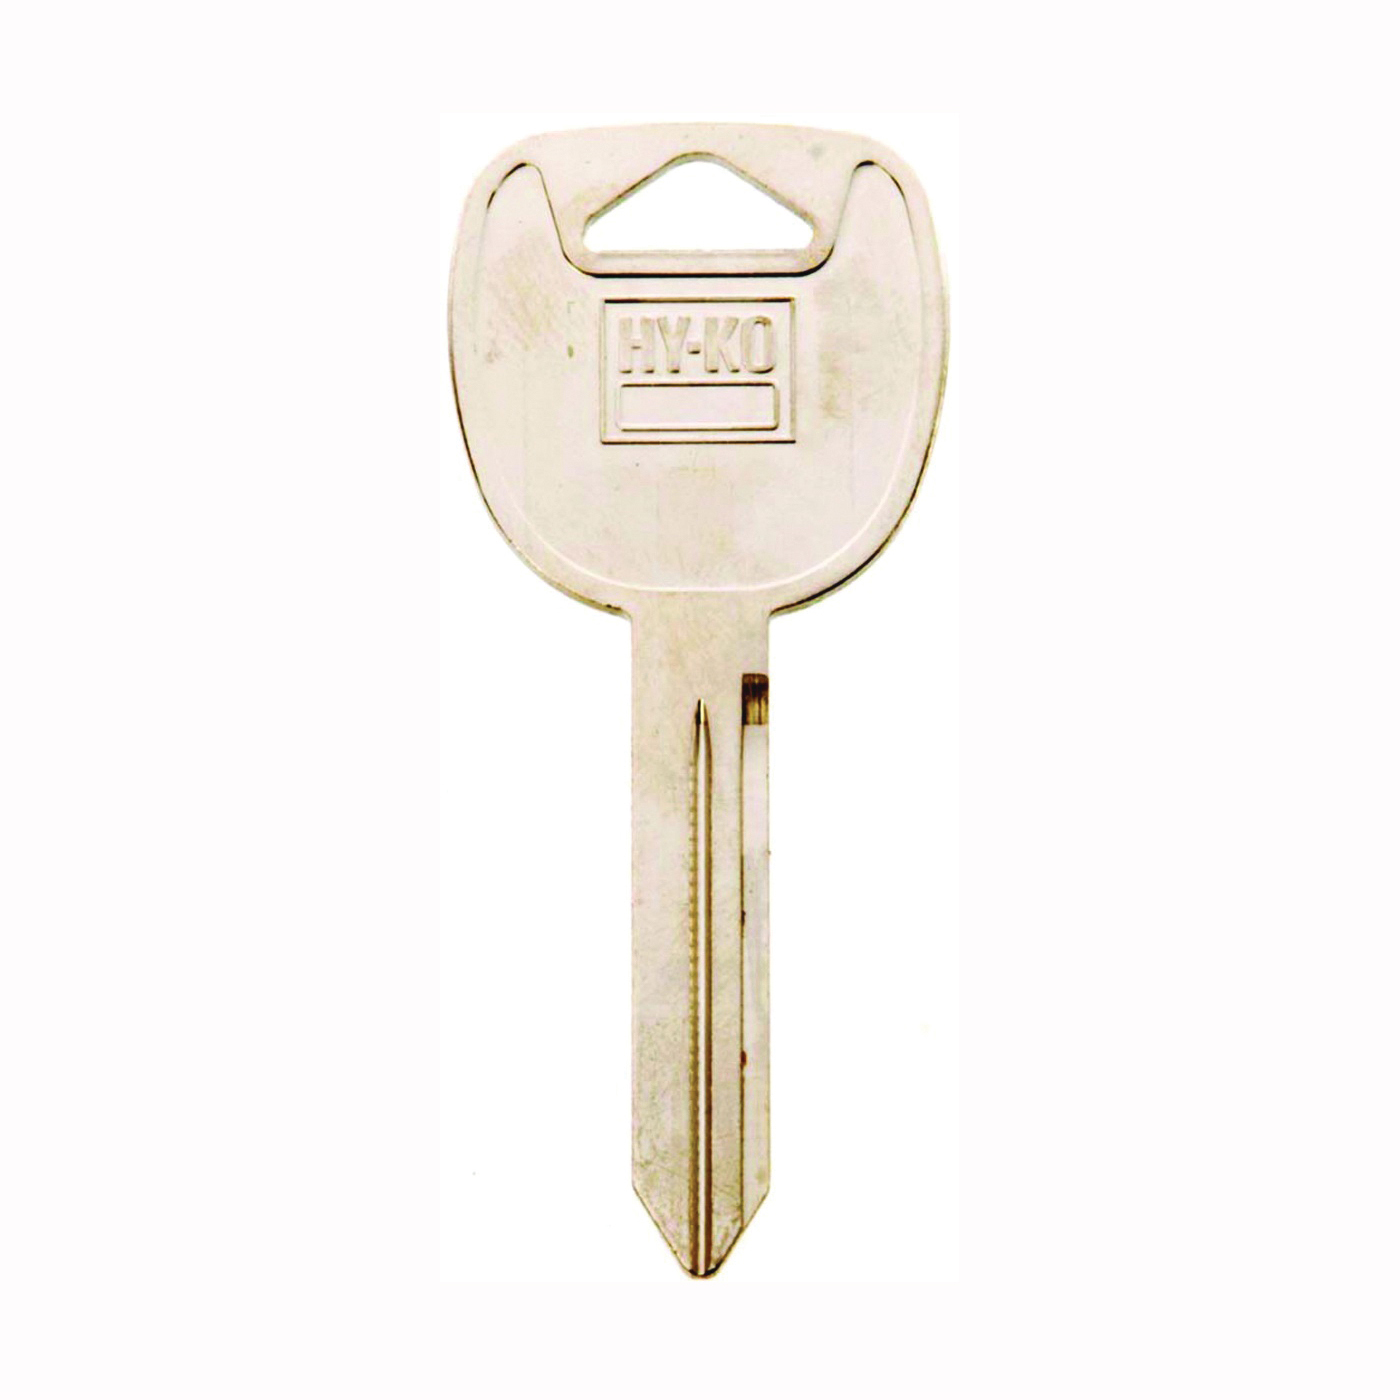 Picture of HY-KO 11010B102 Key Blank, Brass, Nickel, For: Automobile, Many General Motors Vehicles